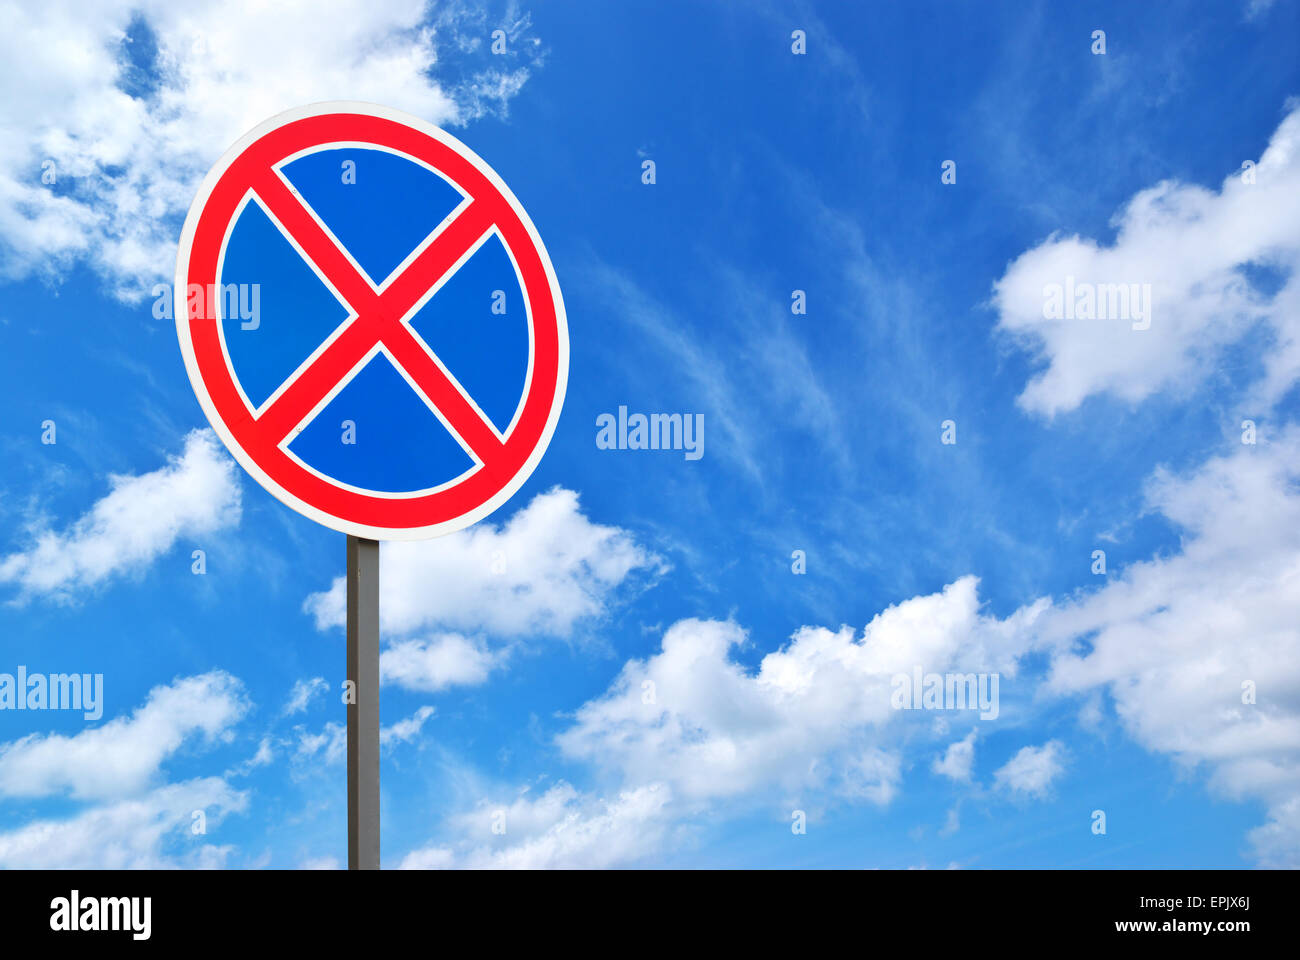 Road sign and blue sky. Isolated design. Stock Photo